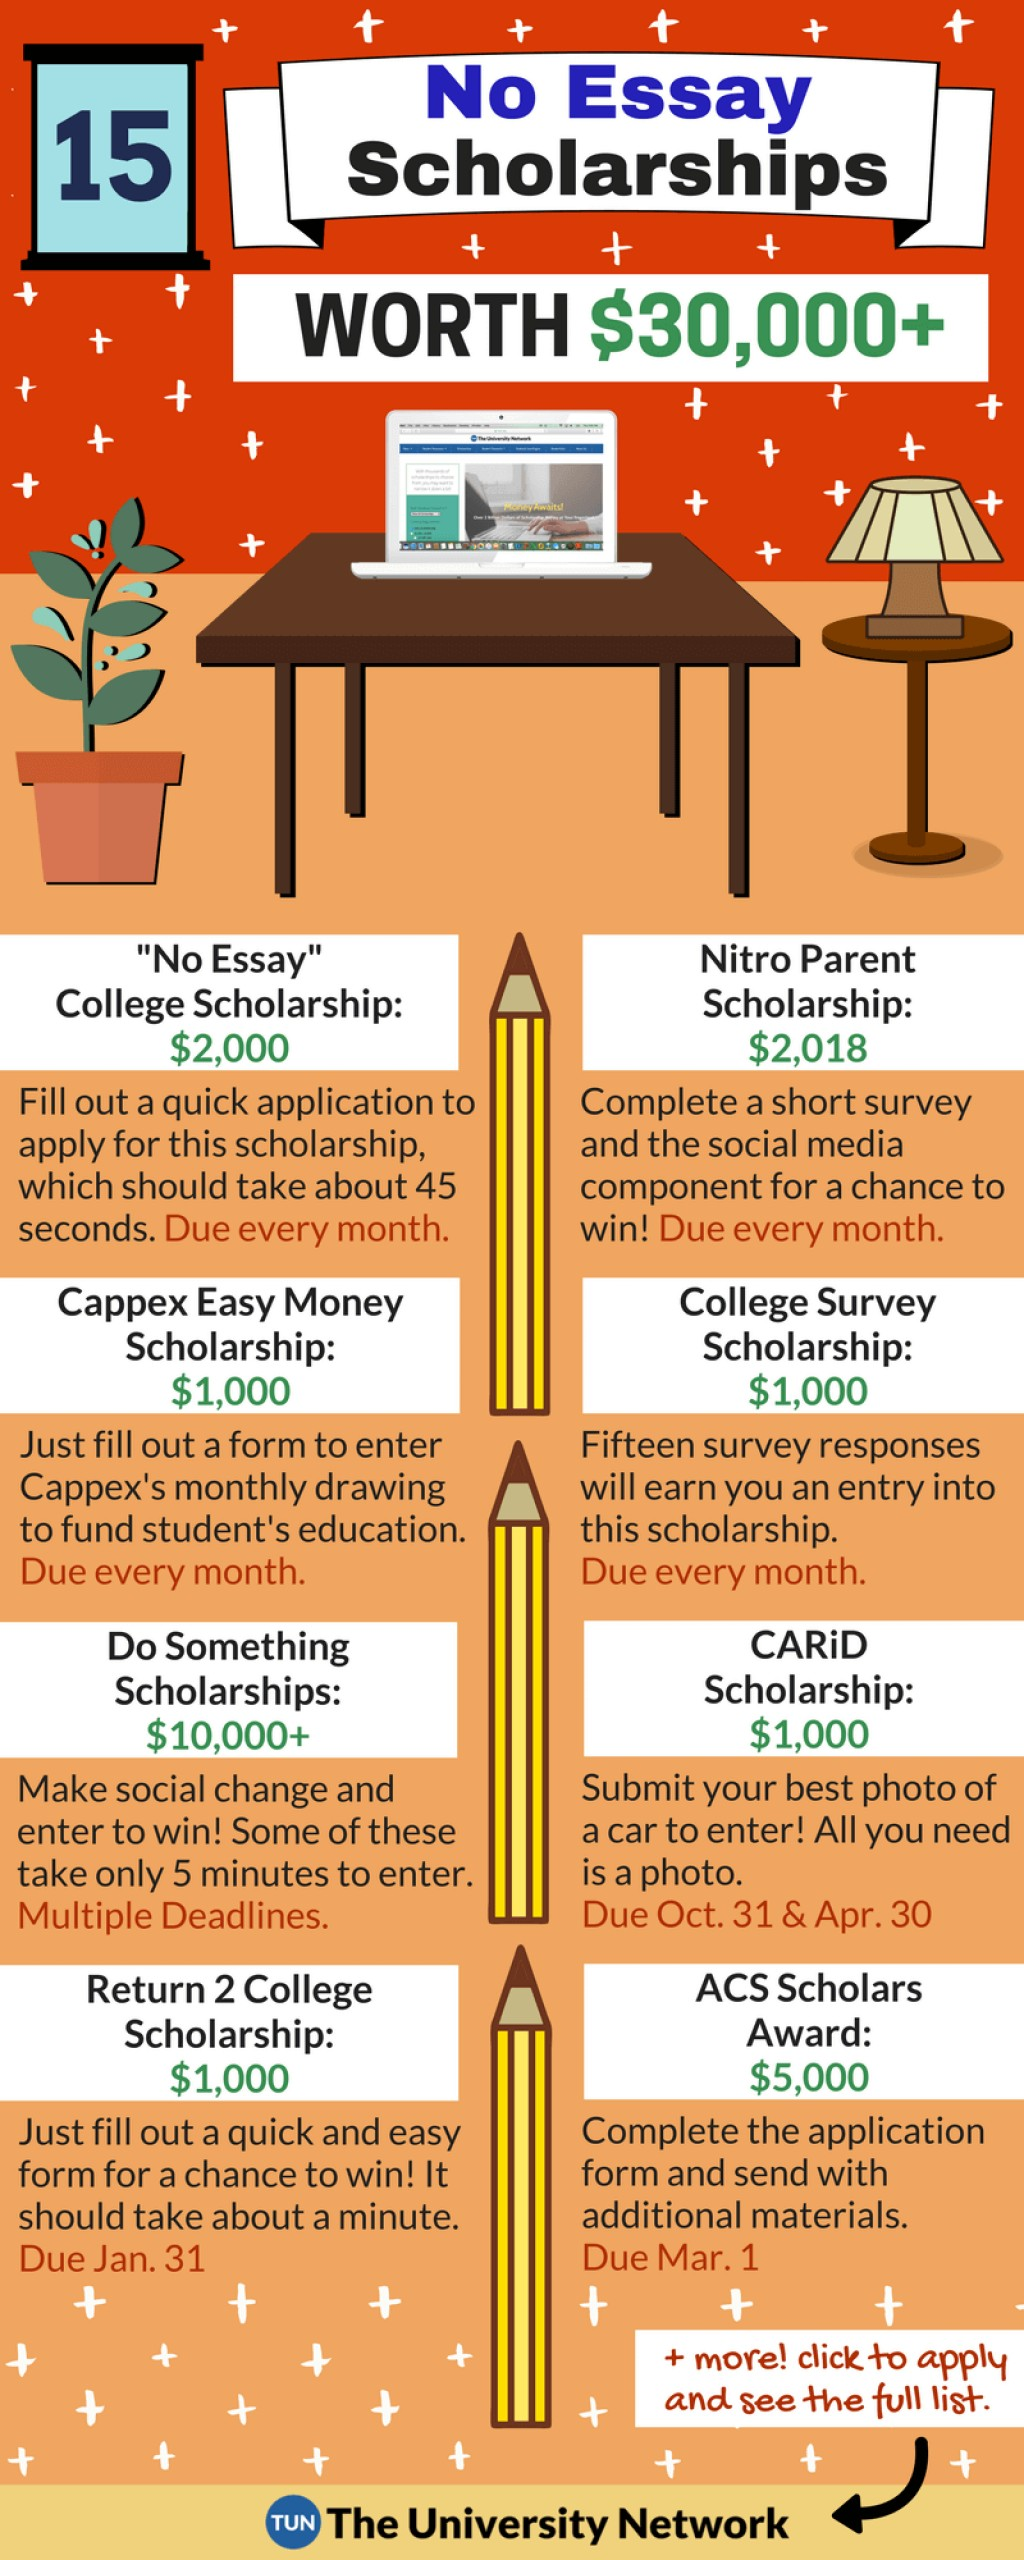 005 No Essay Scholarships Example Exceptional For Undergraduates College Students 2019 Large